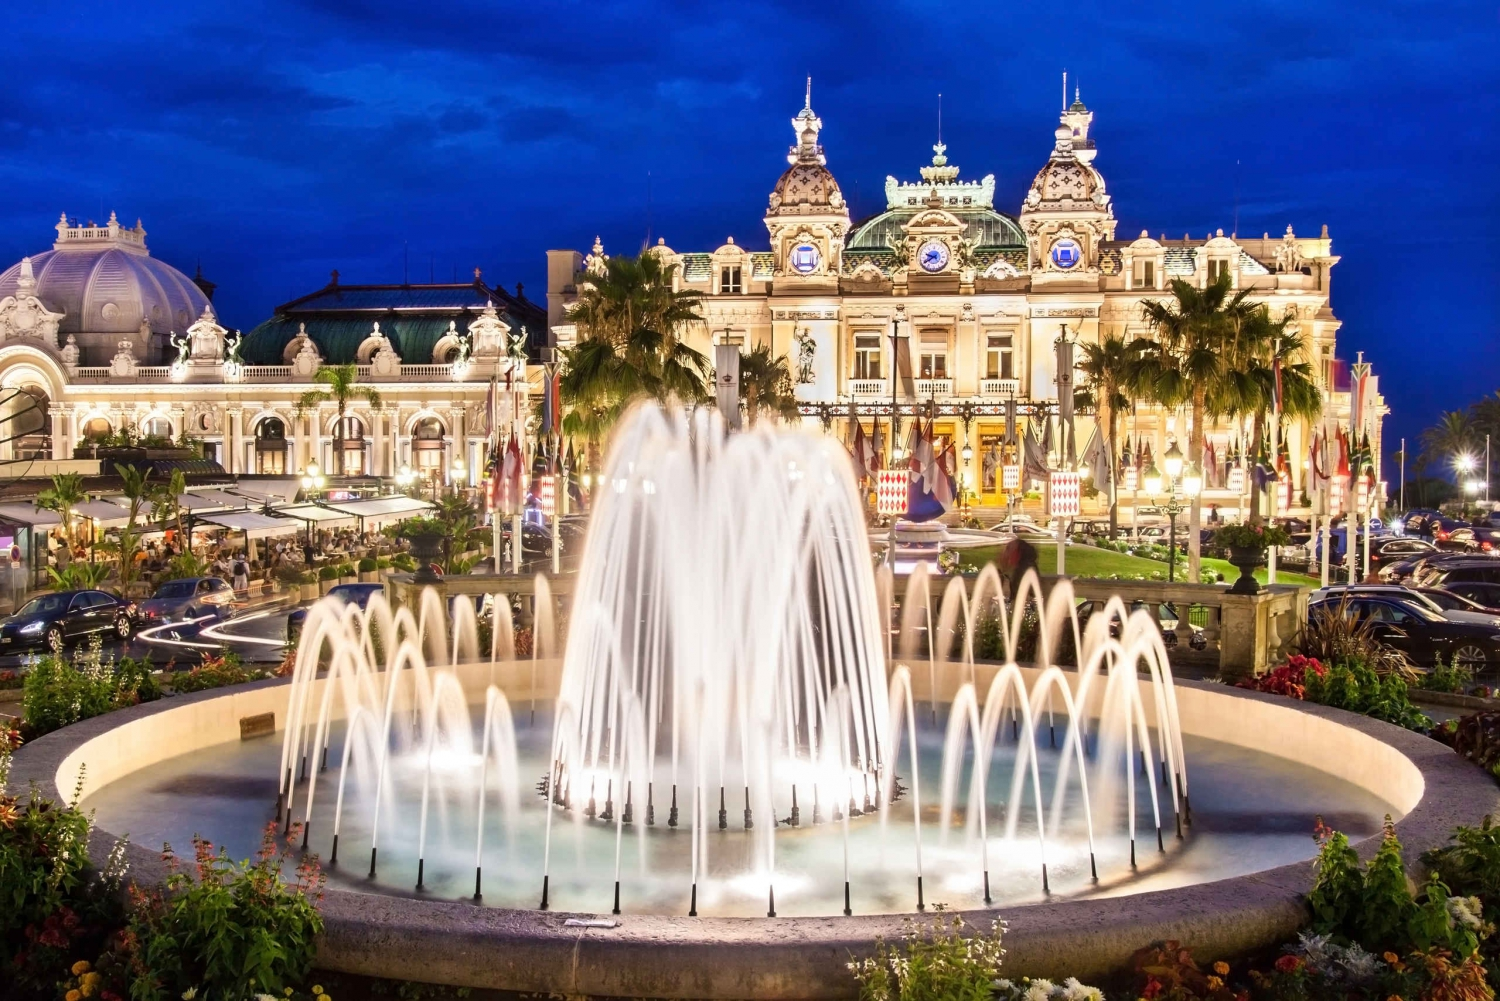 From Cannes: Evening Tour & Dinner in Monte Carlo